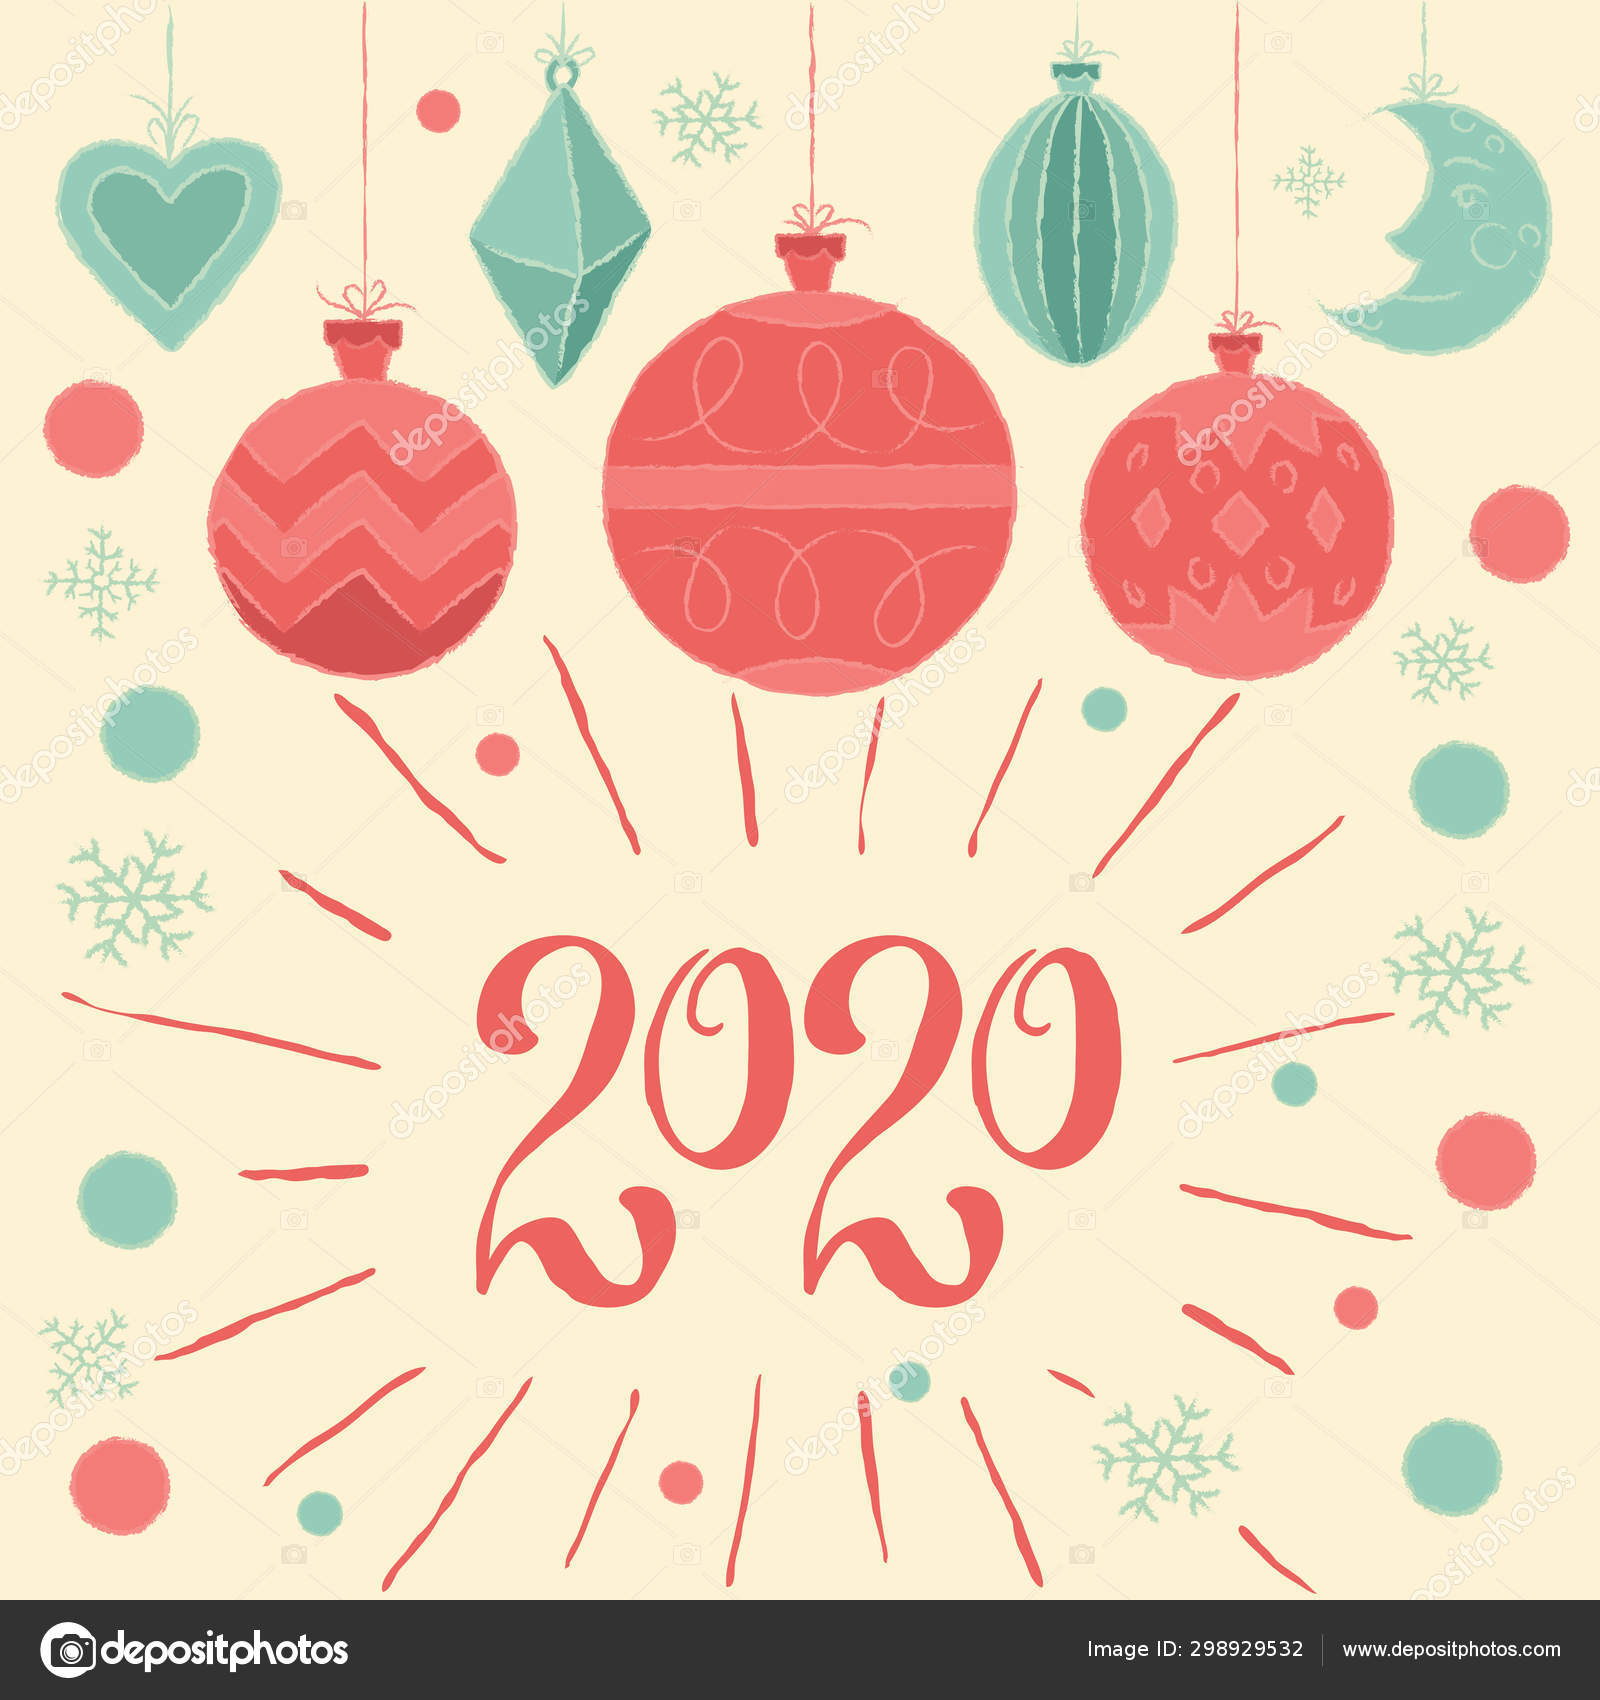 2020 Merry Christmas Happy New Year Greeting Card ...